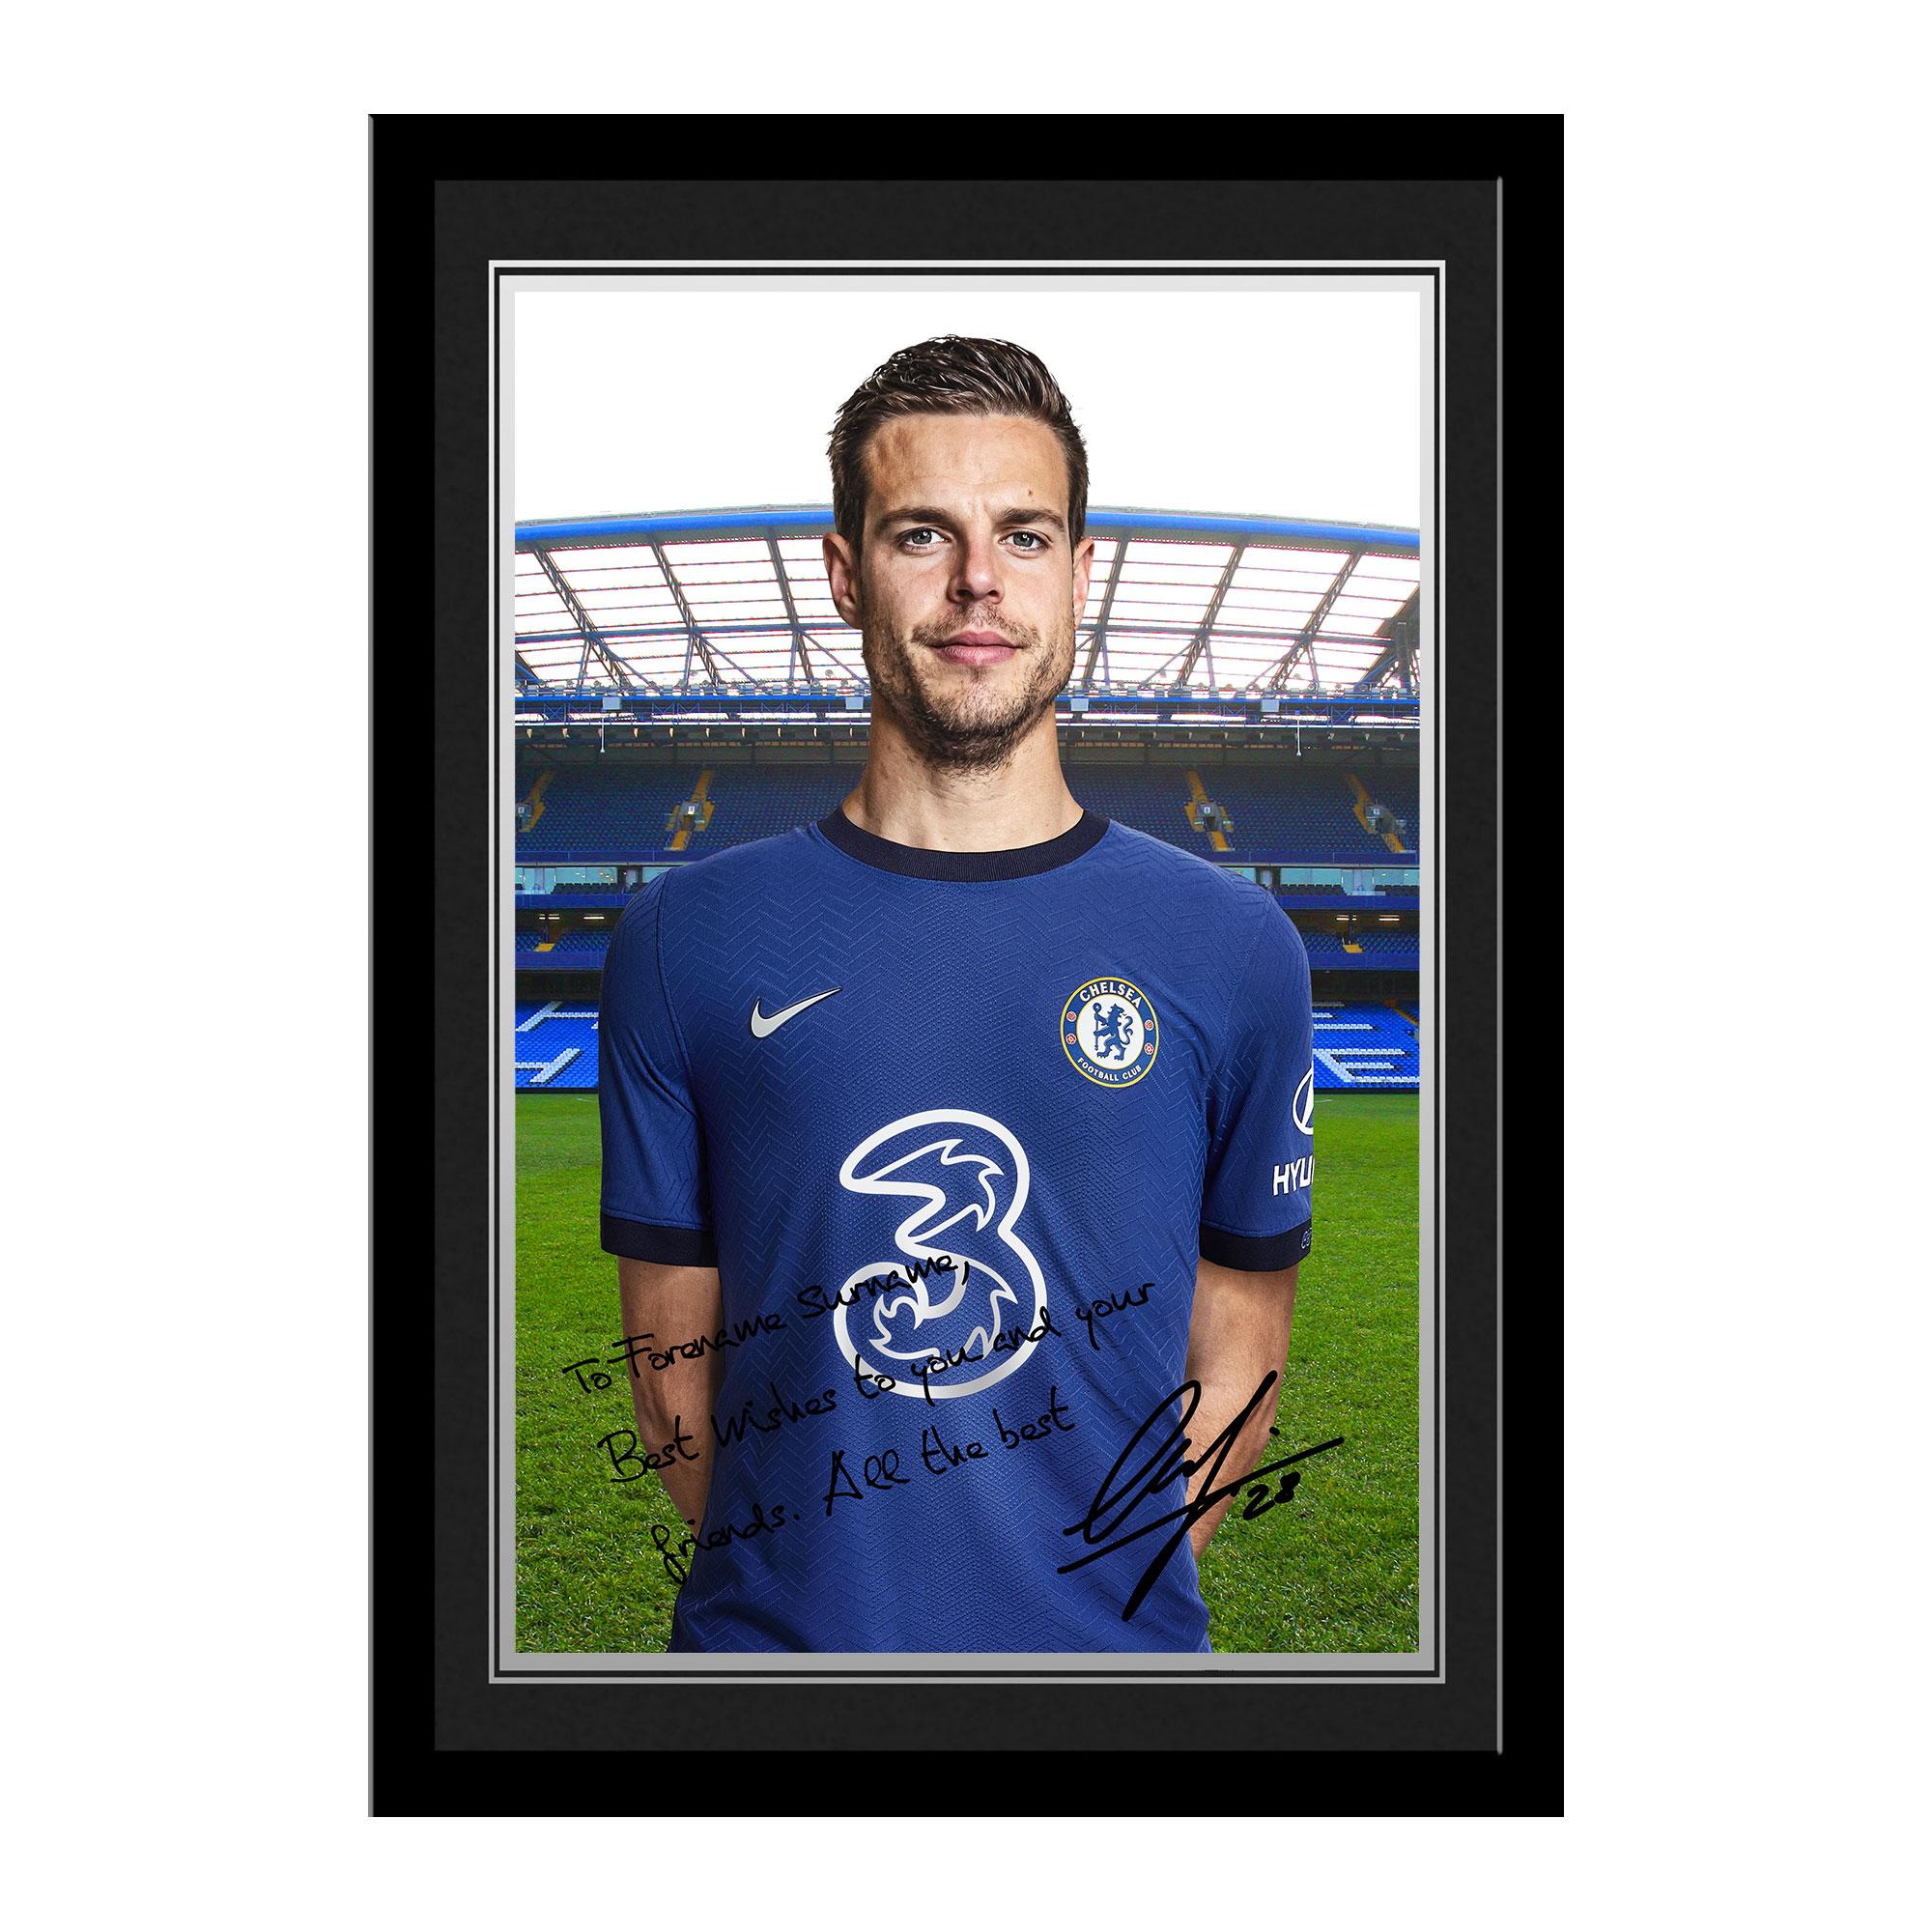 Chelsea FC Azpilicueta Autograph Photo Framed